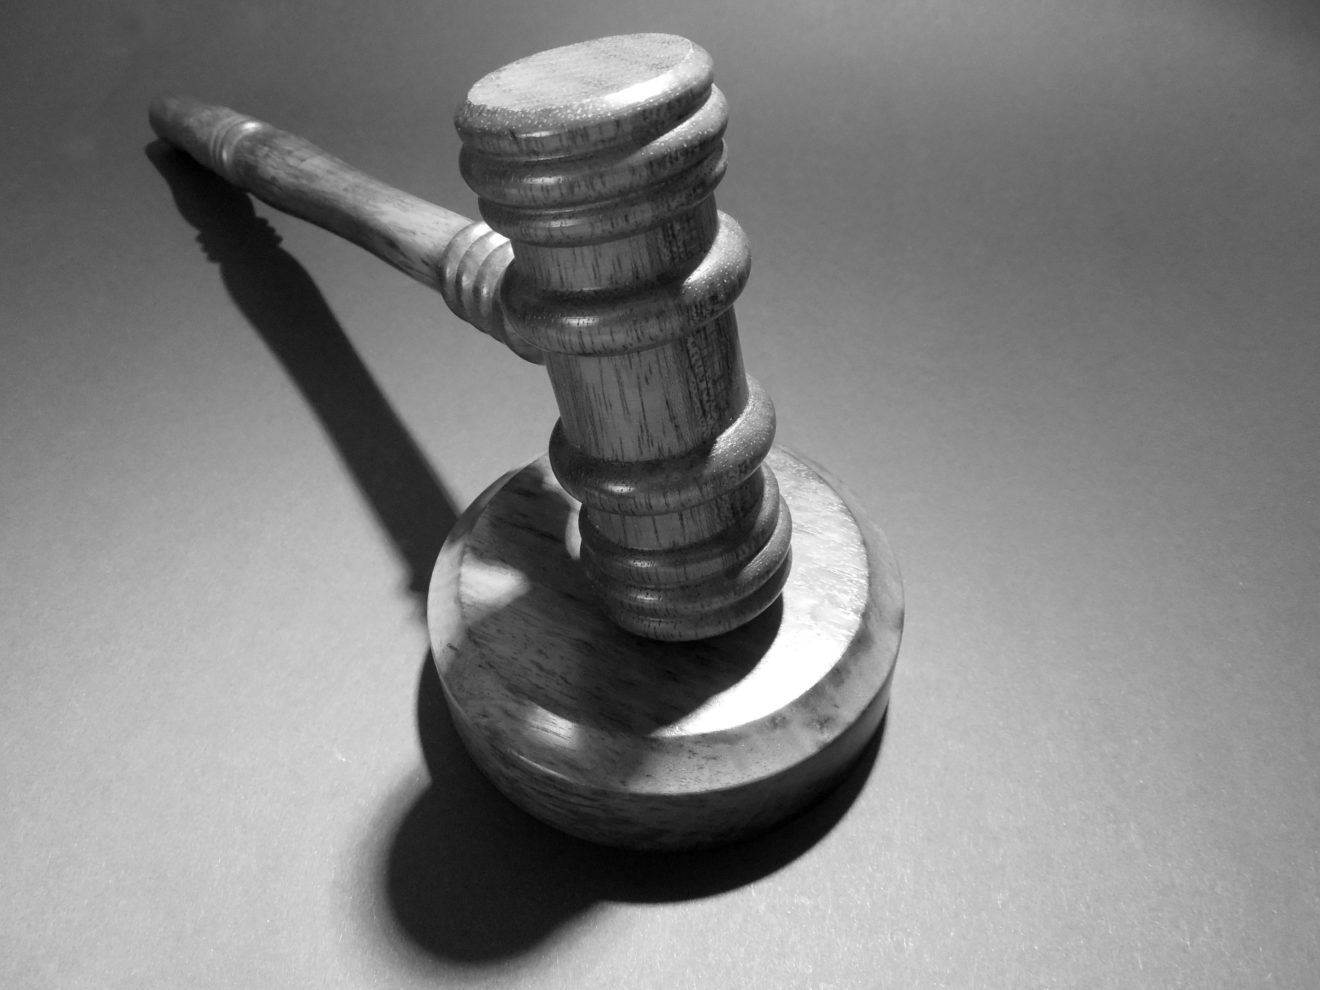 wheel-hammer-tap-justice-court-law-477111-pxhere.com